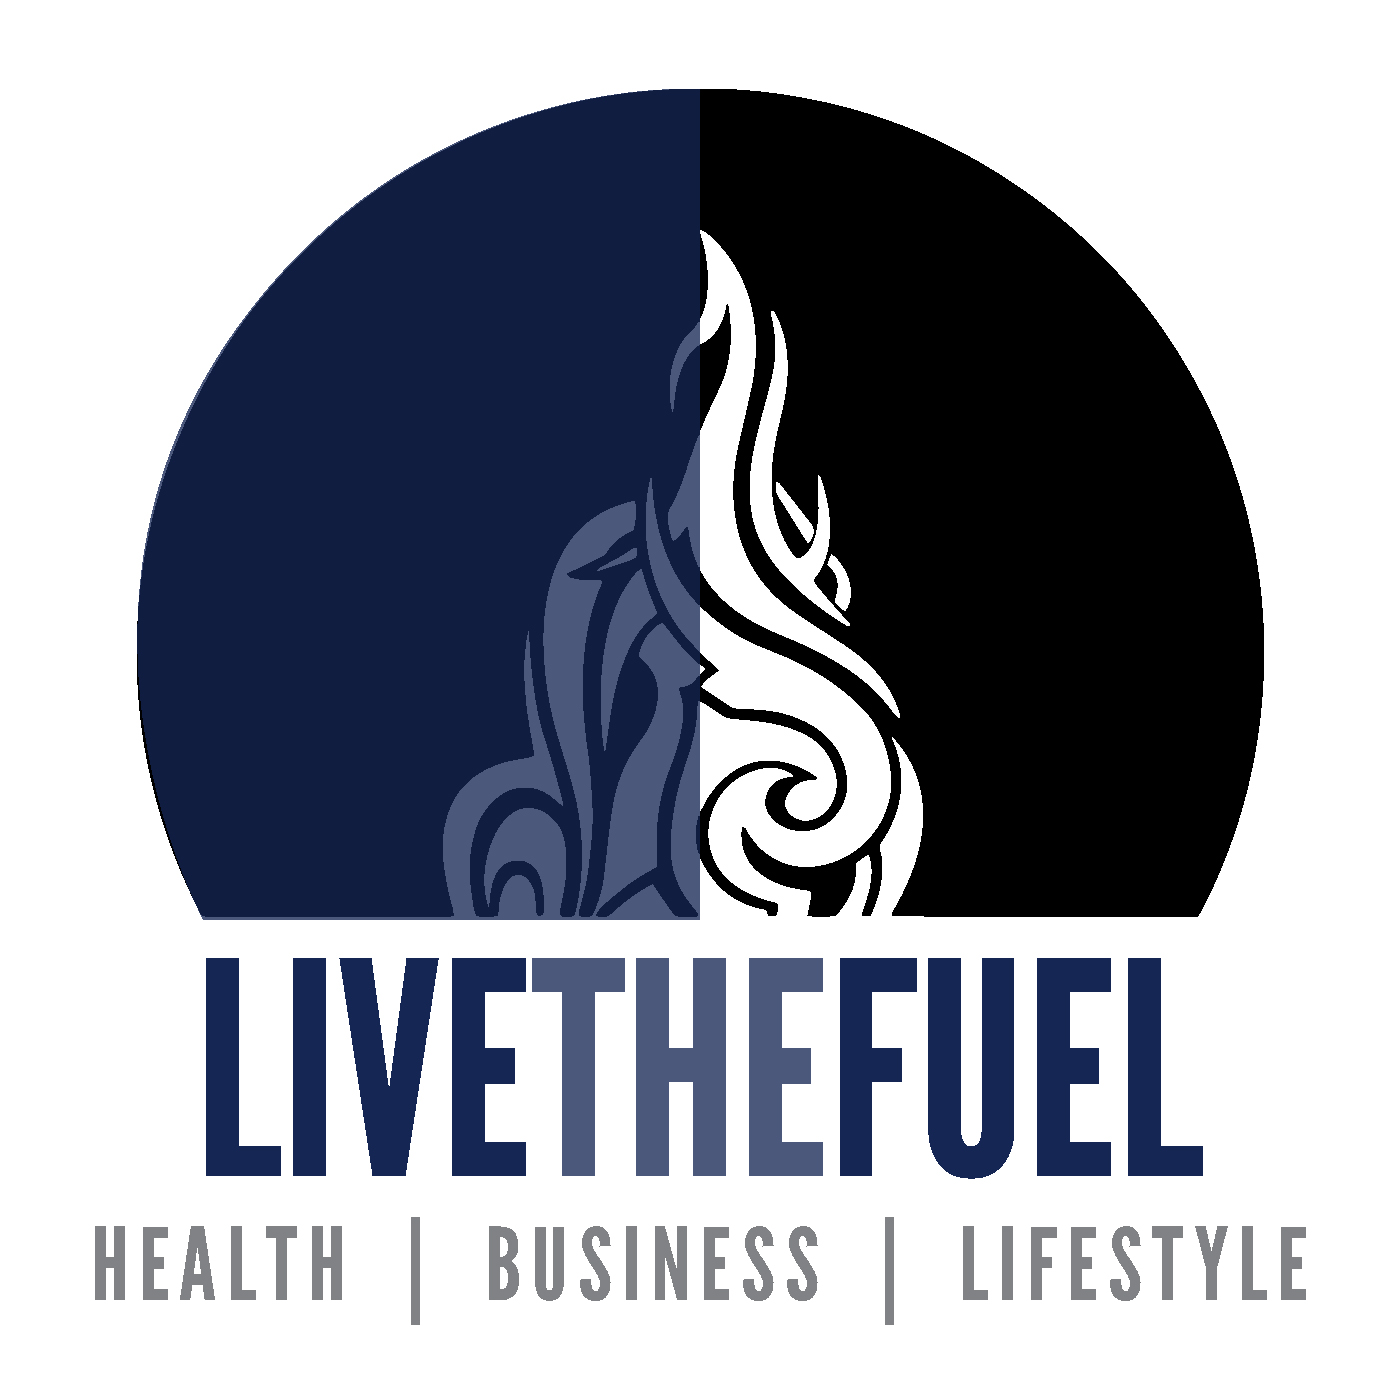 LIVETHEFUEL - Health, Business, and Lifestyle